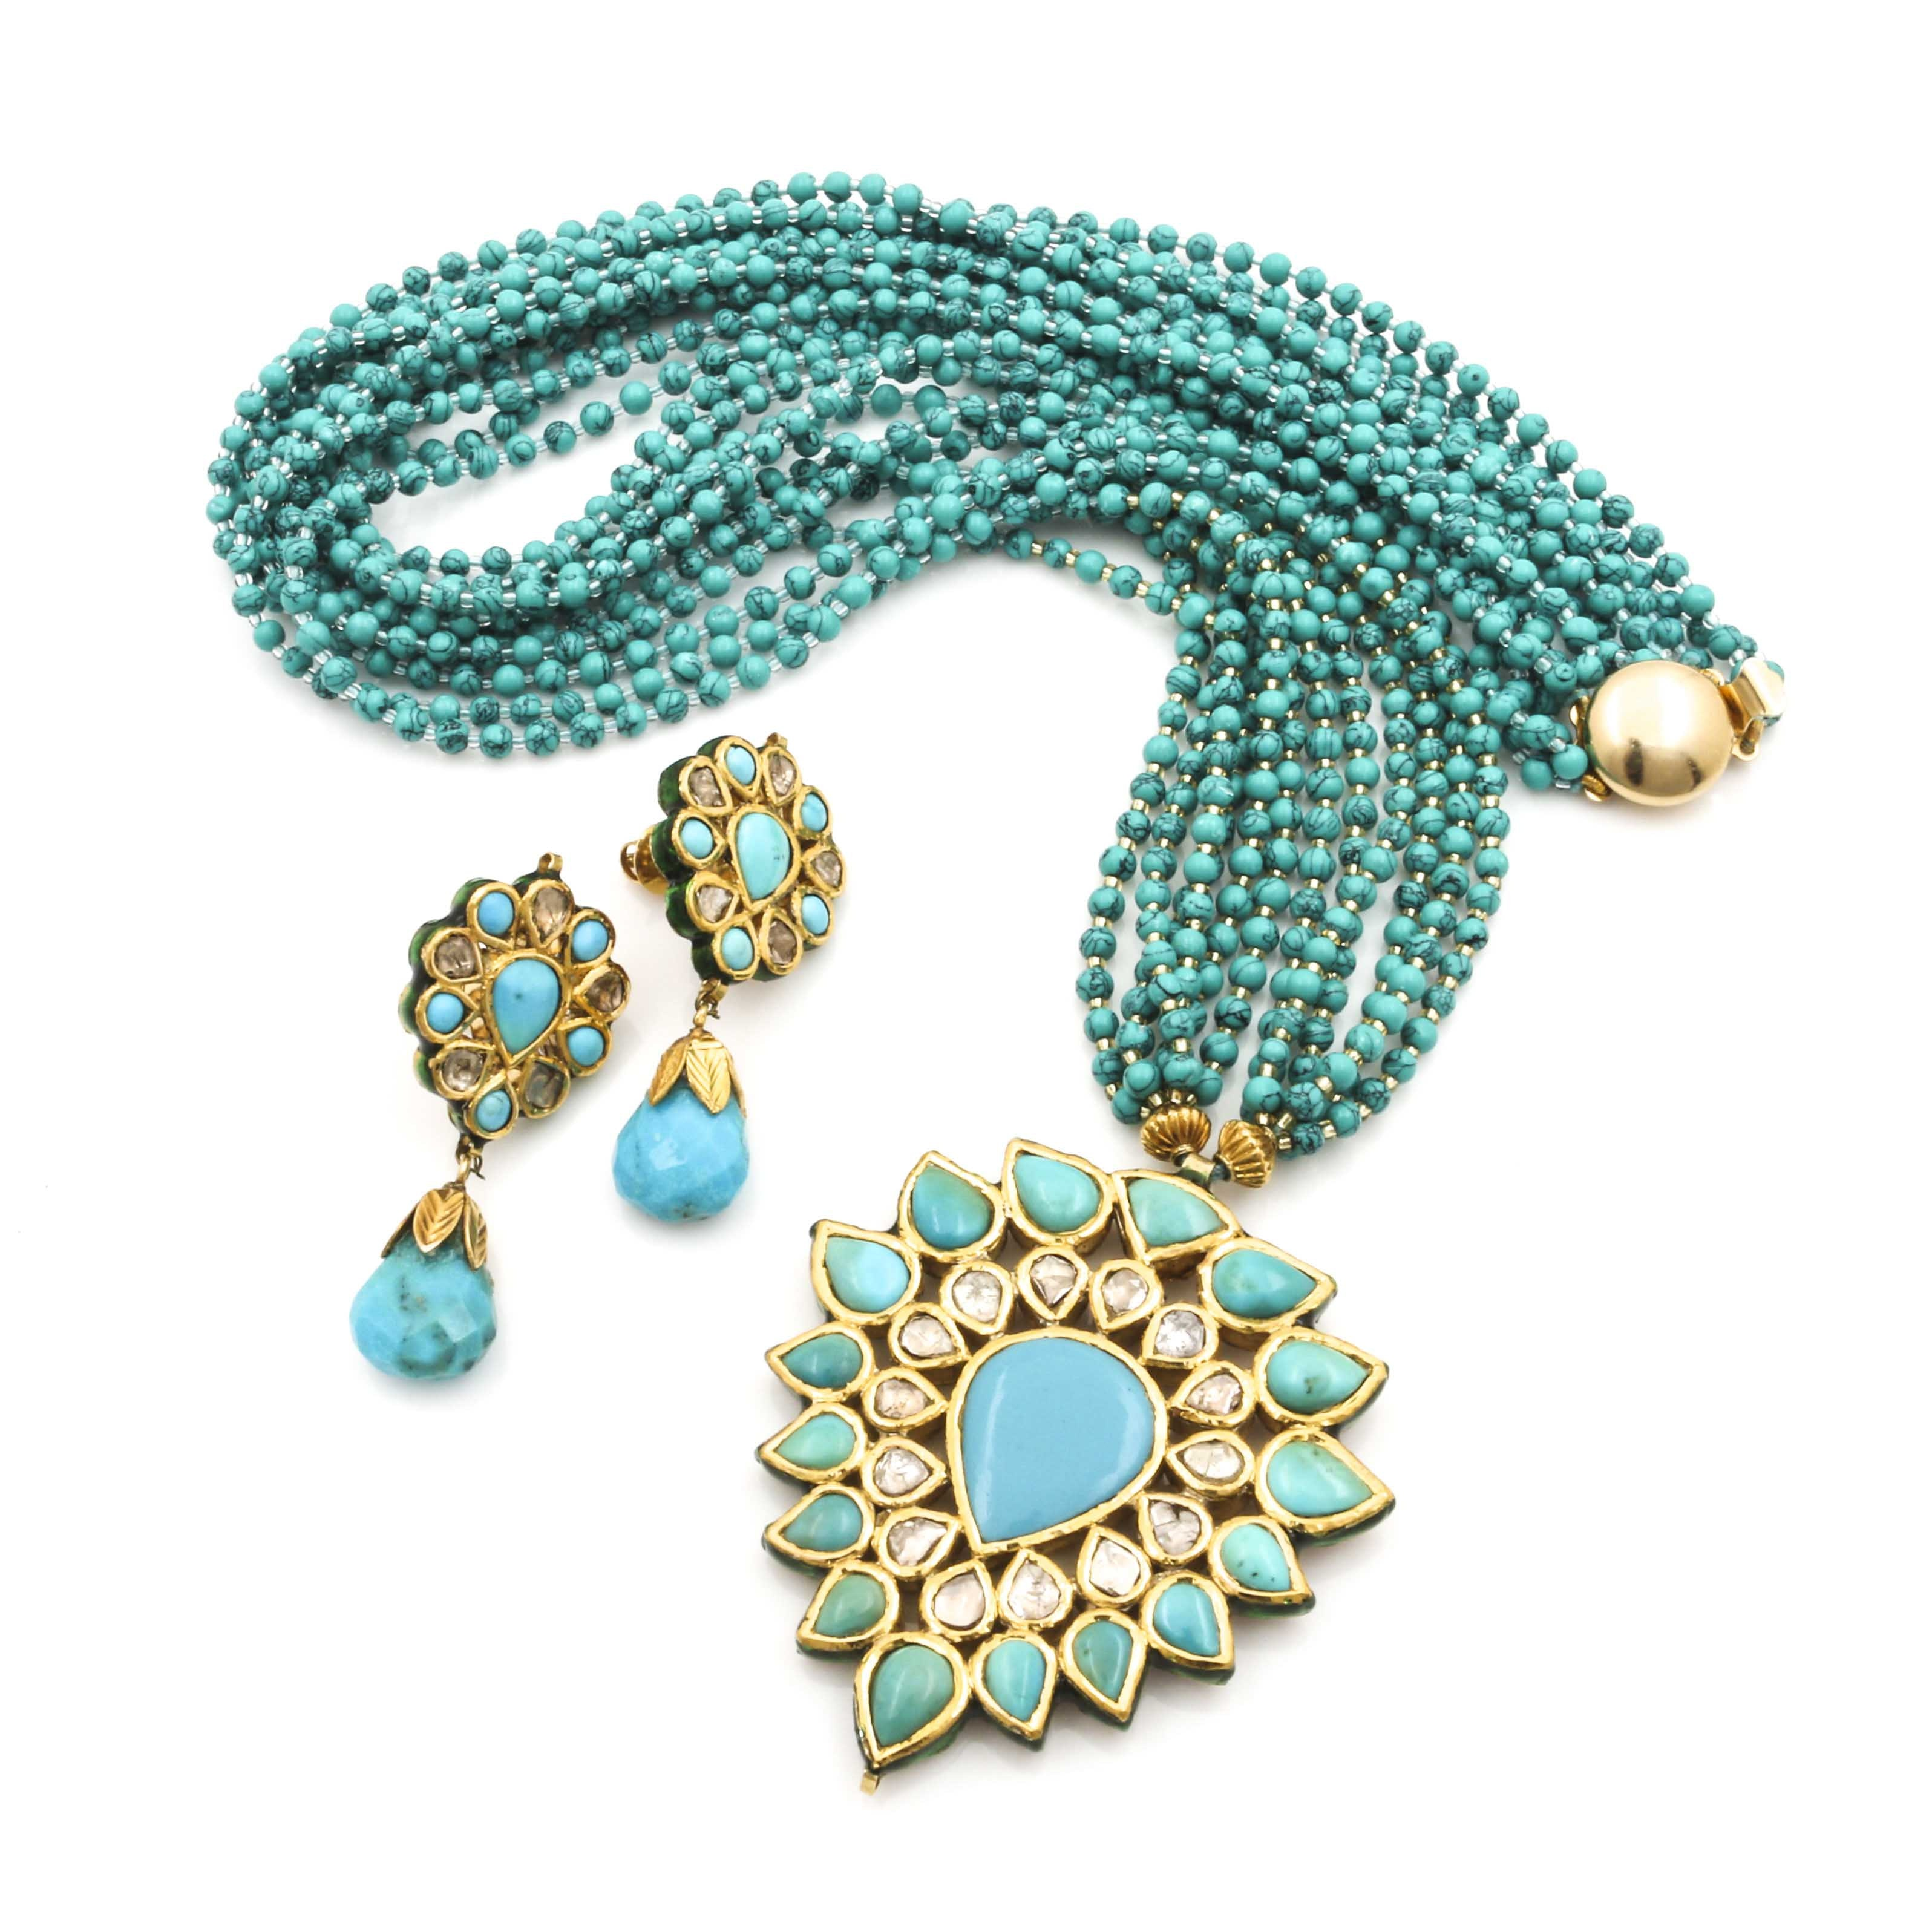 18K Yellow Gold Earrings with Diamond and Turquoise Statement Necklace